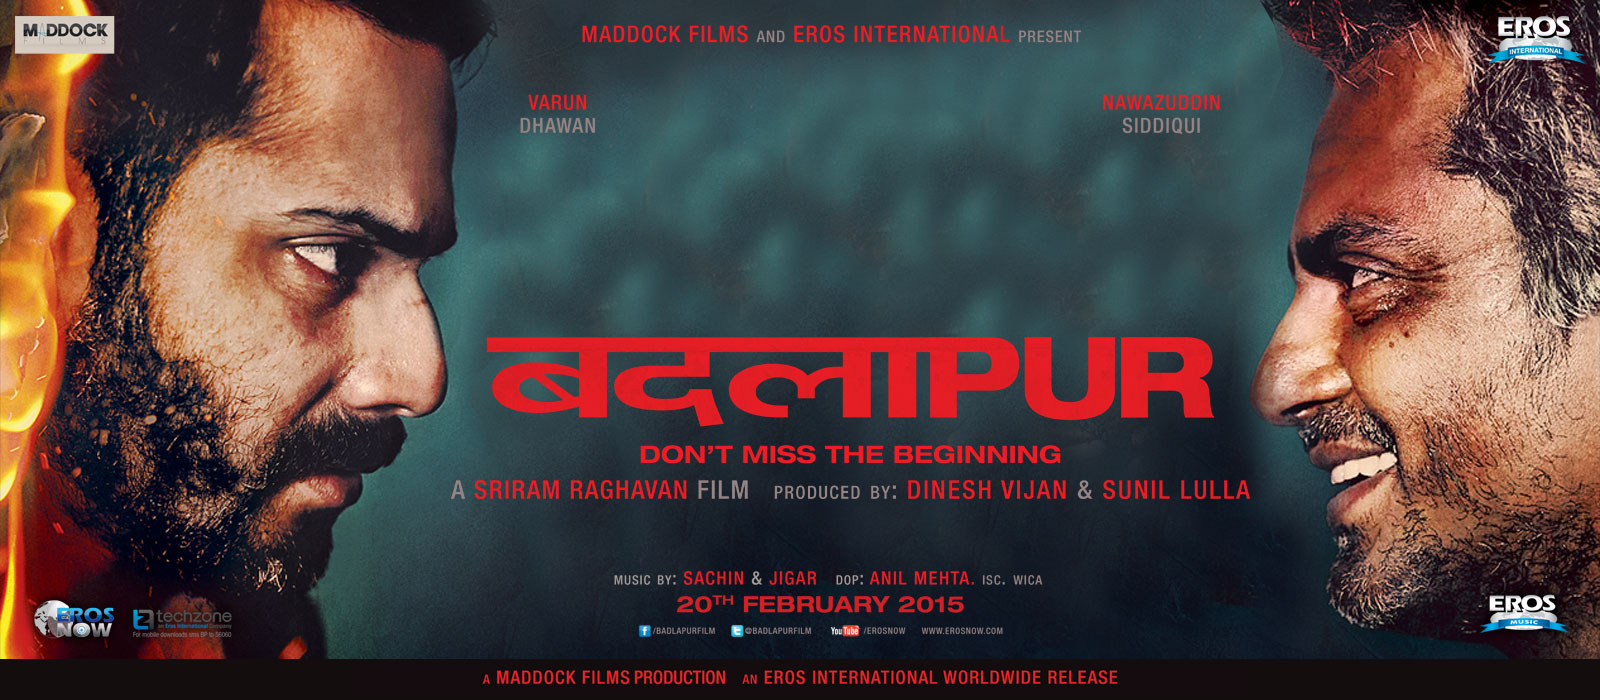 Badlapur Movie Poster